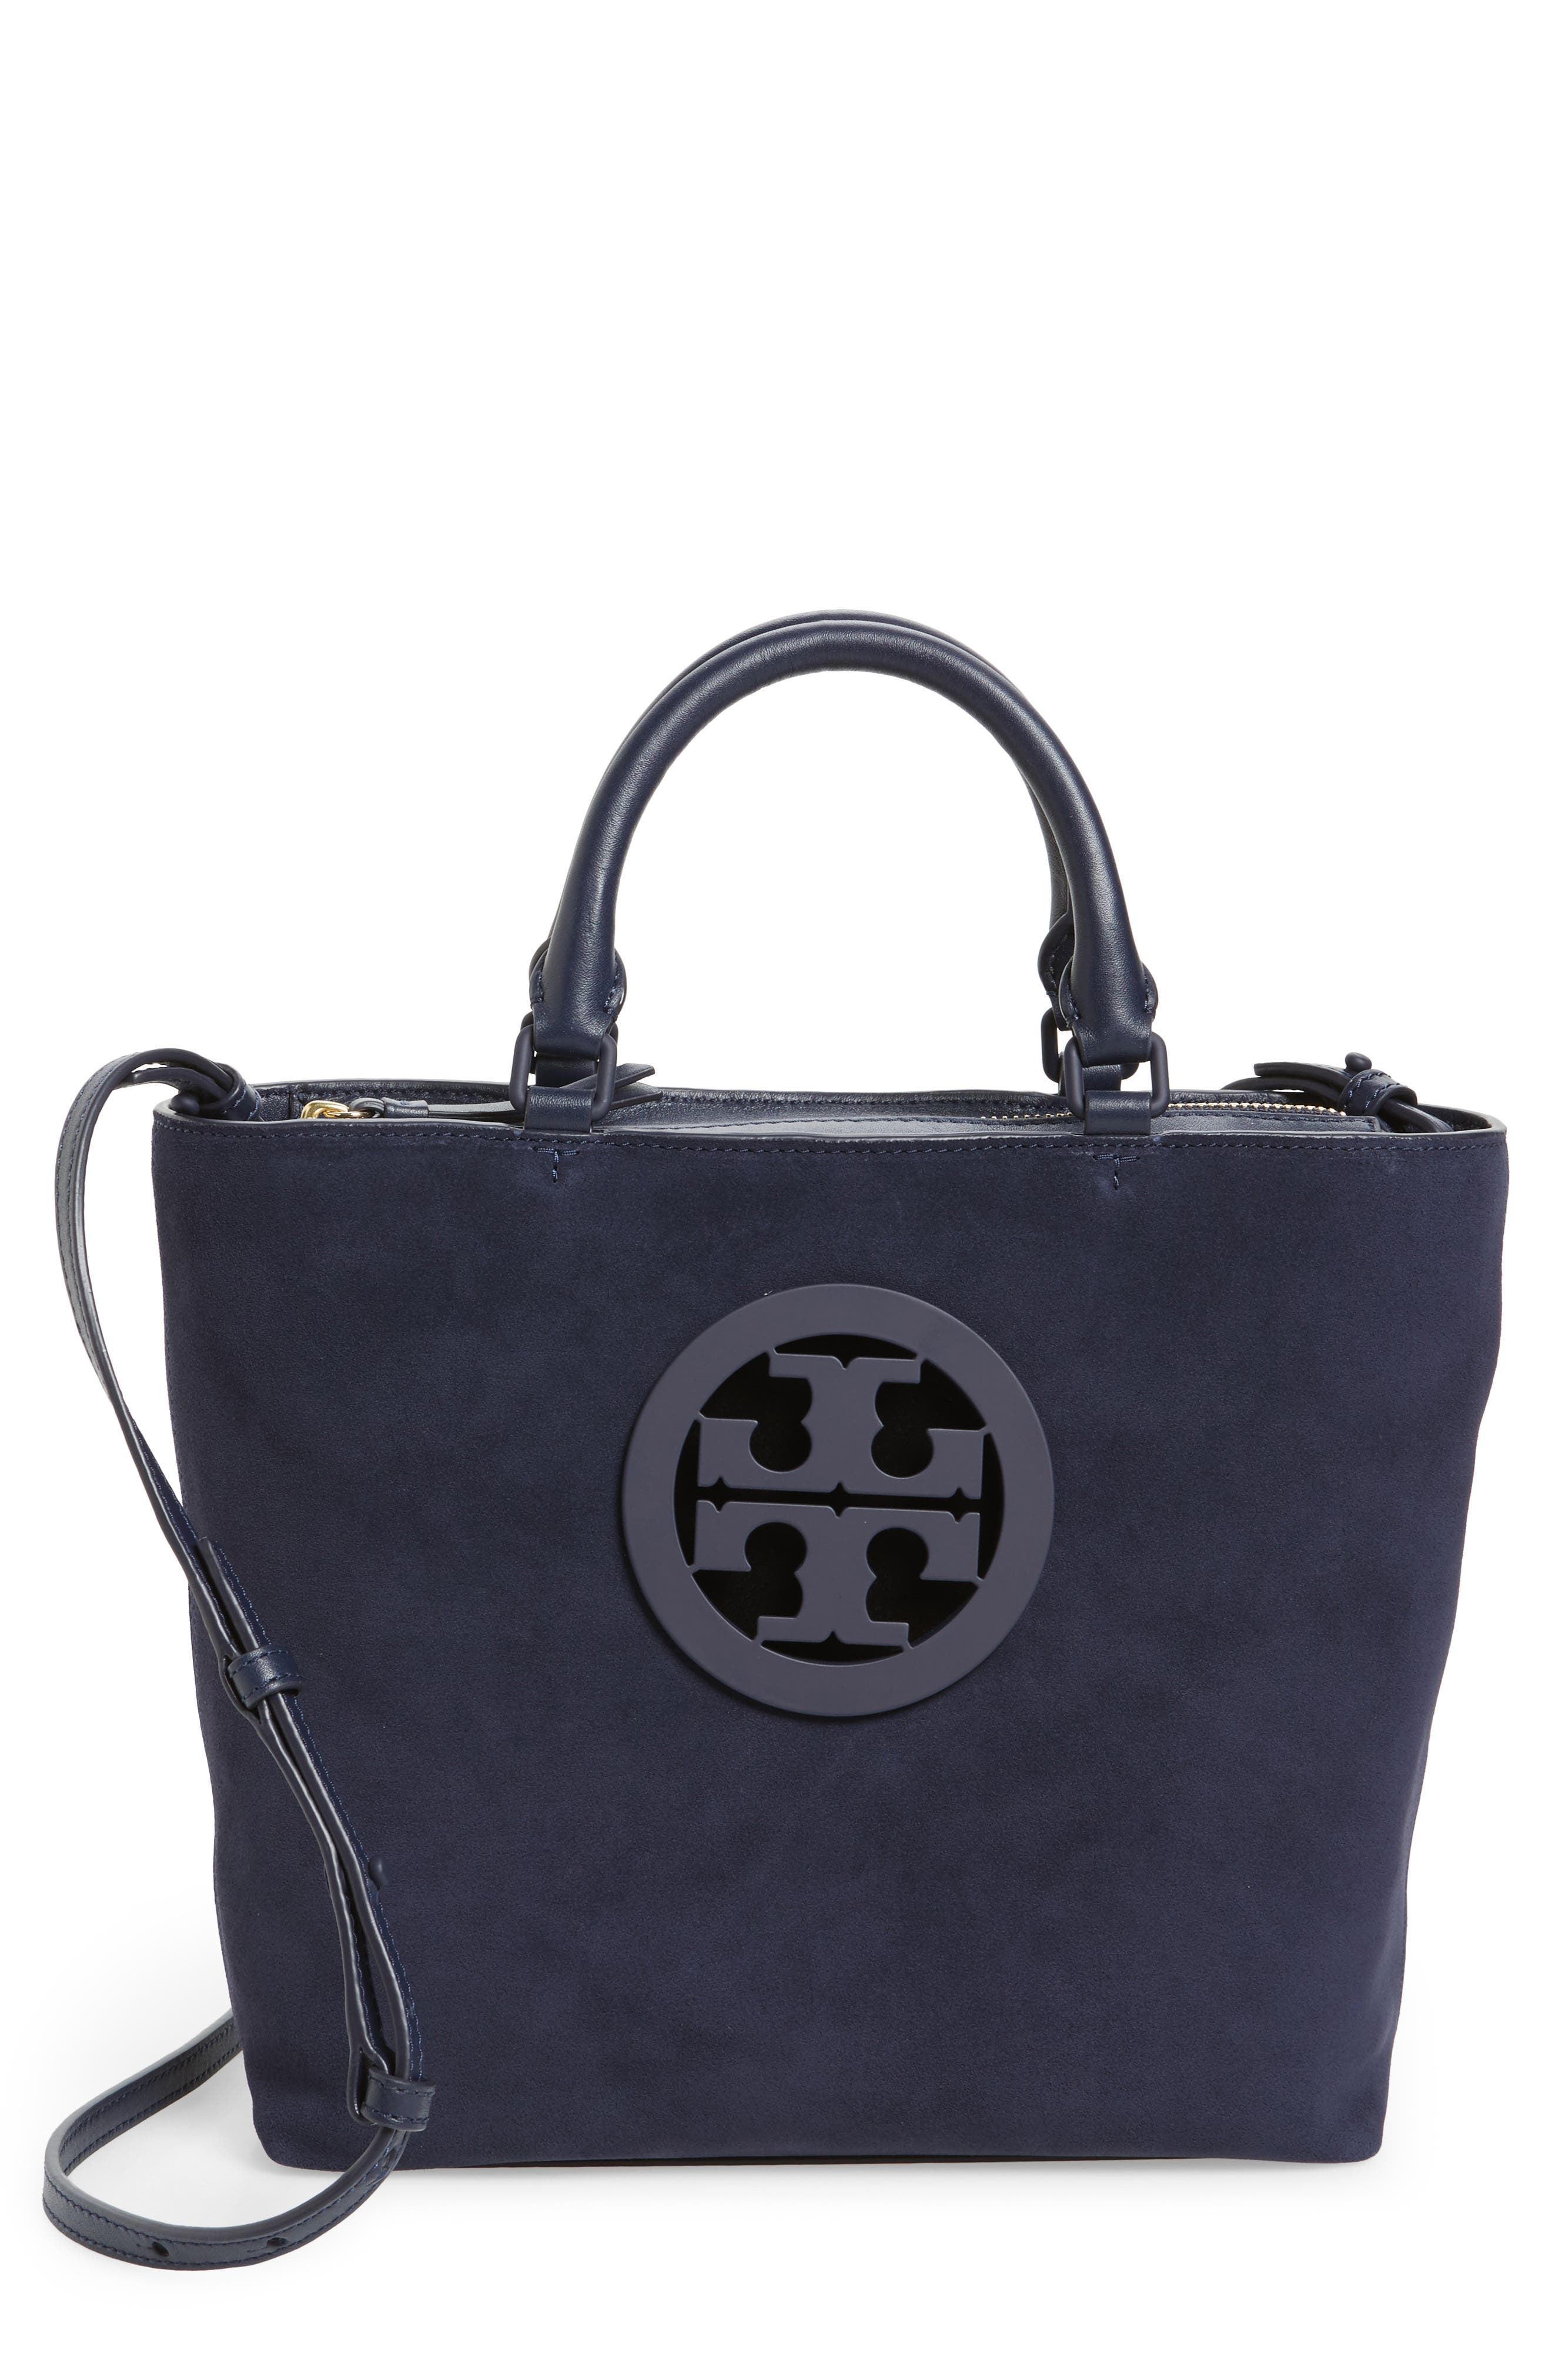 Alternate Image 1 Selected - Tory Burch Small Charlie Suede Tote